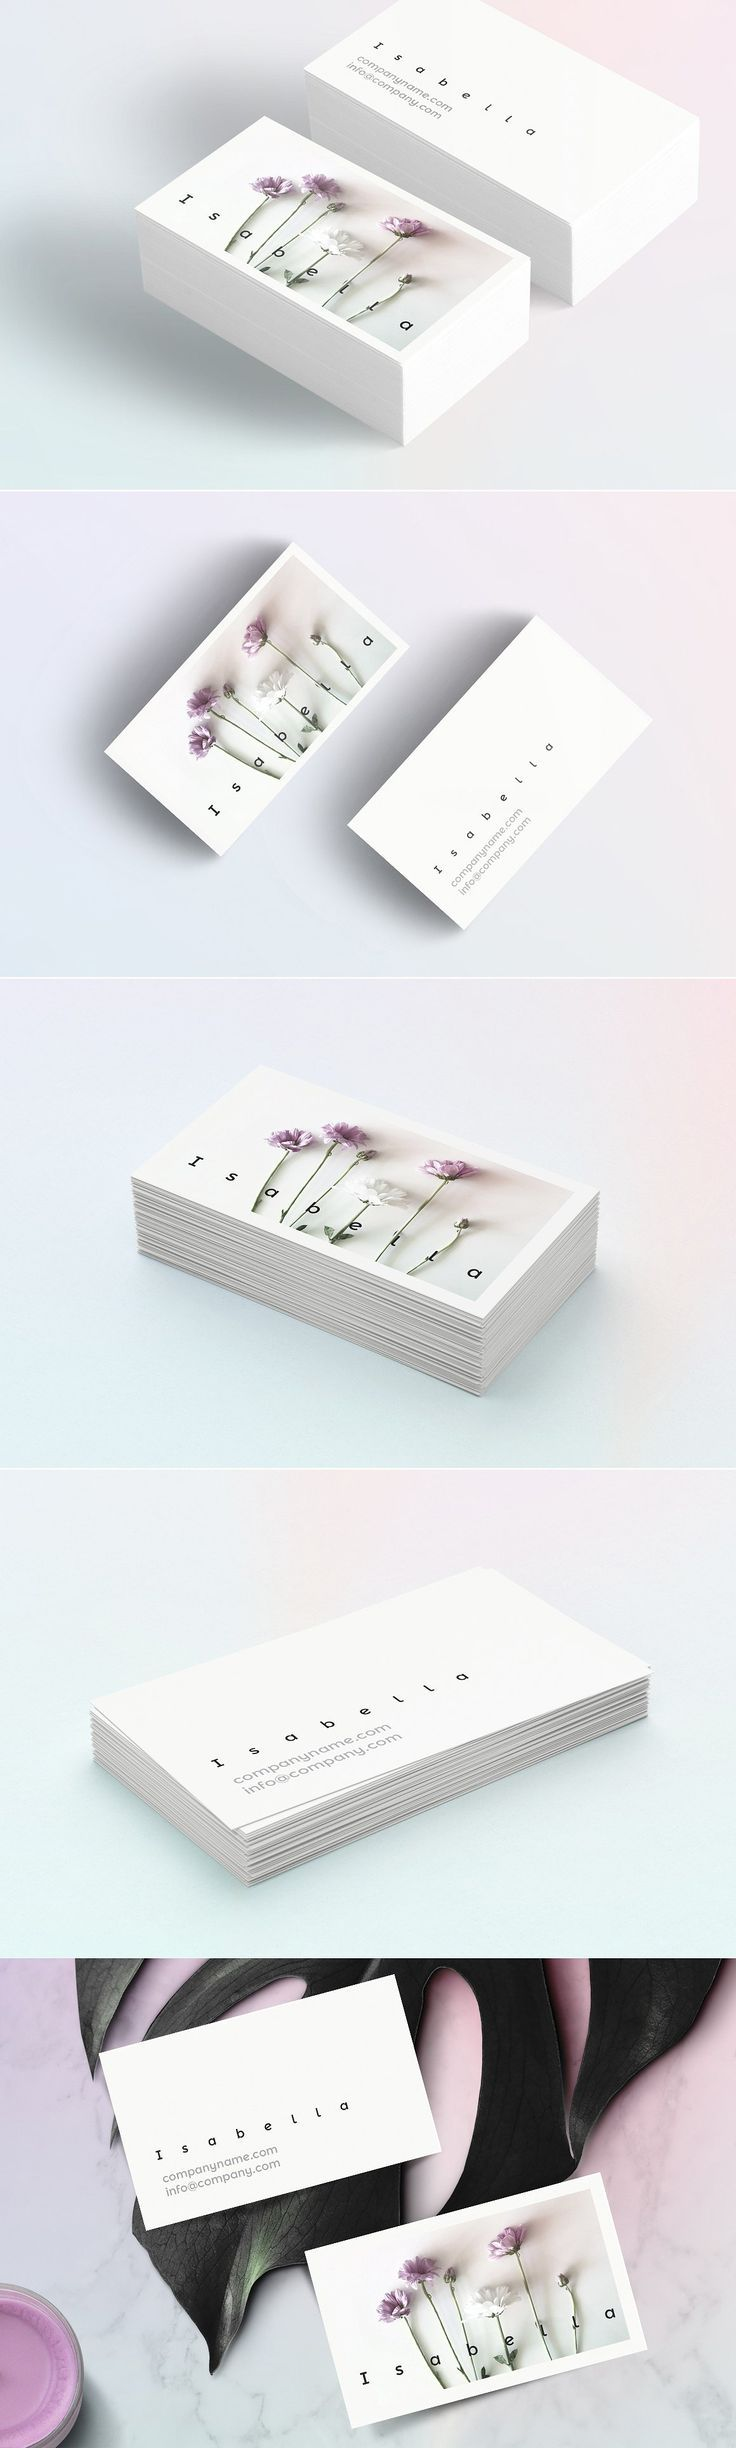 Isabella-floral business card by Polar Vectors on Creative Market Professional b...